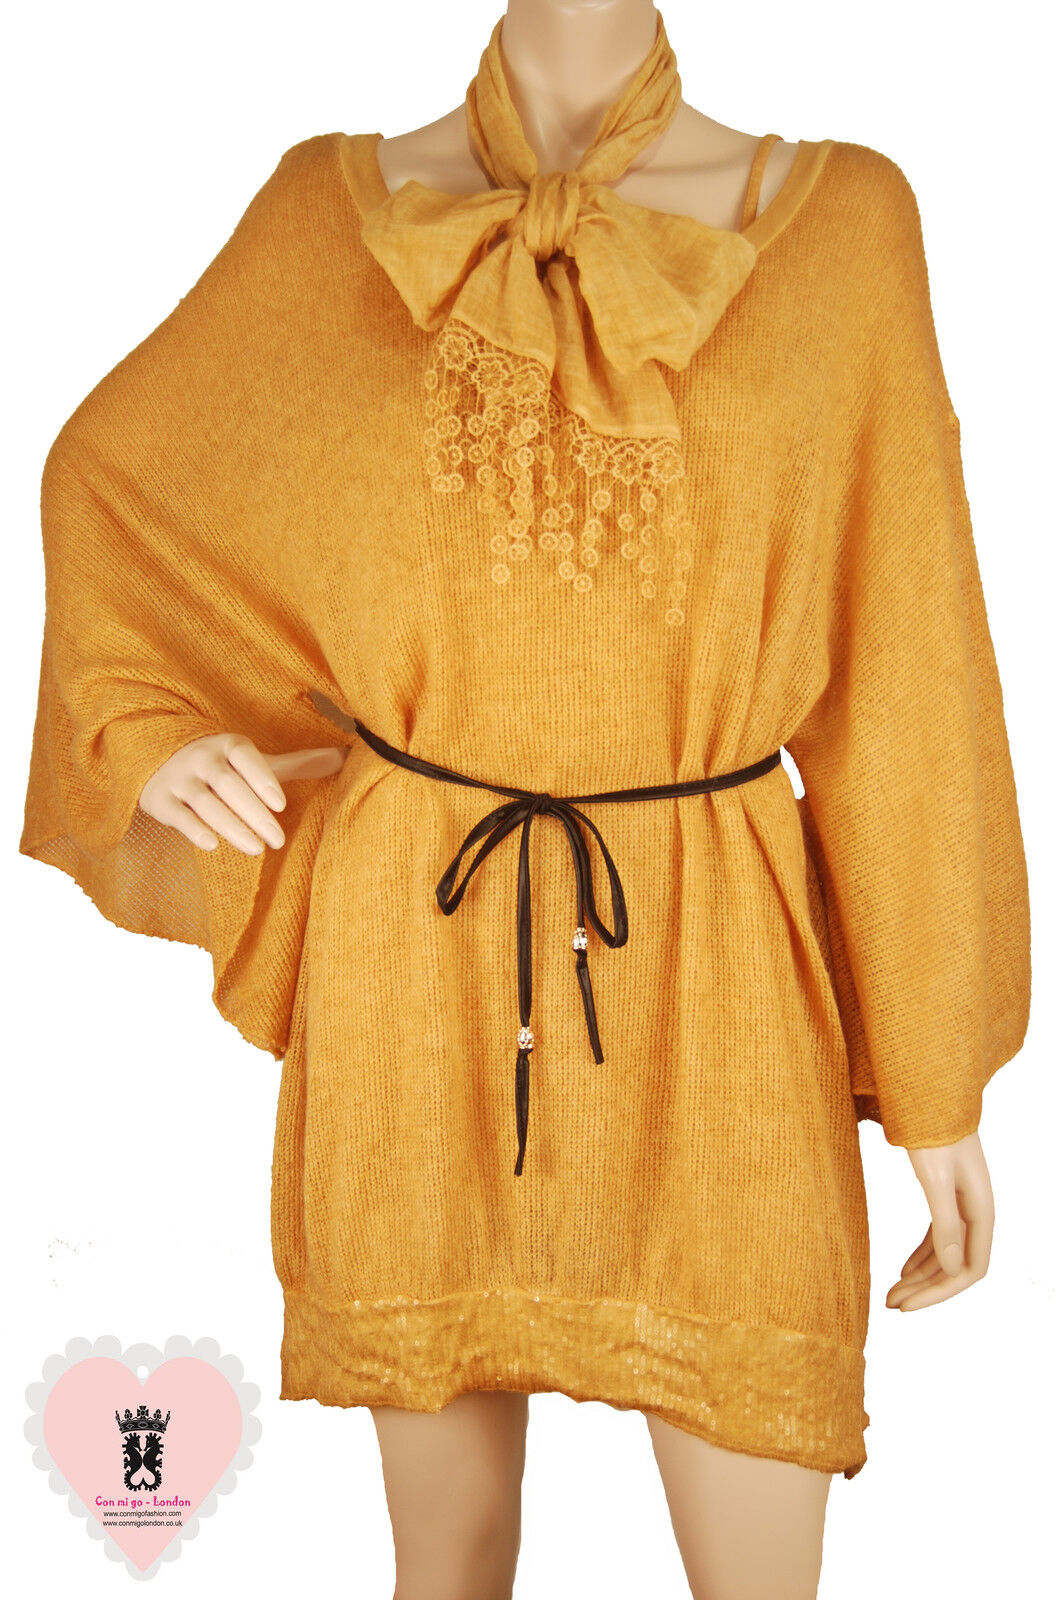 Made in  - go124 - Gold Tierot Wool Tunic & Insdie Tee & Scarf - 3 items